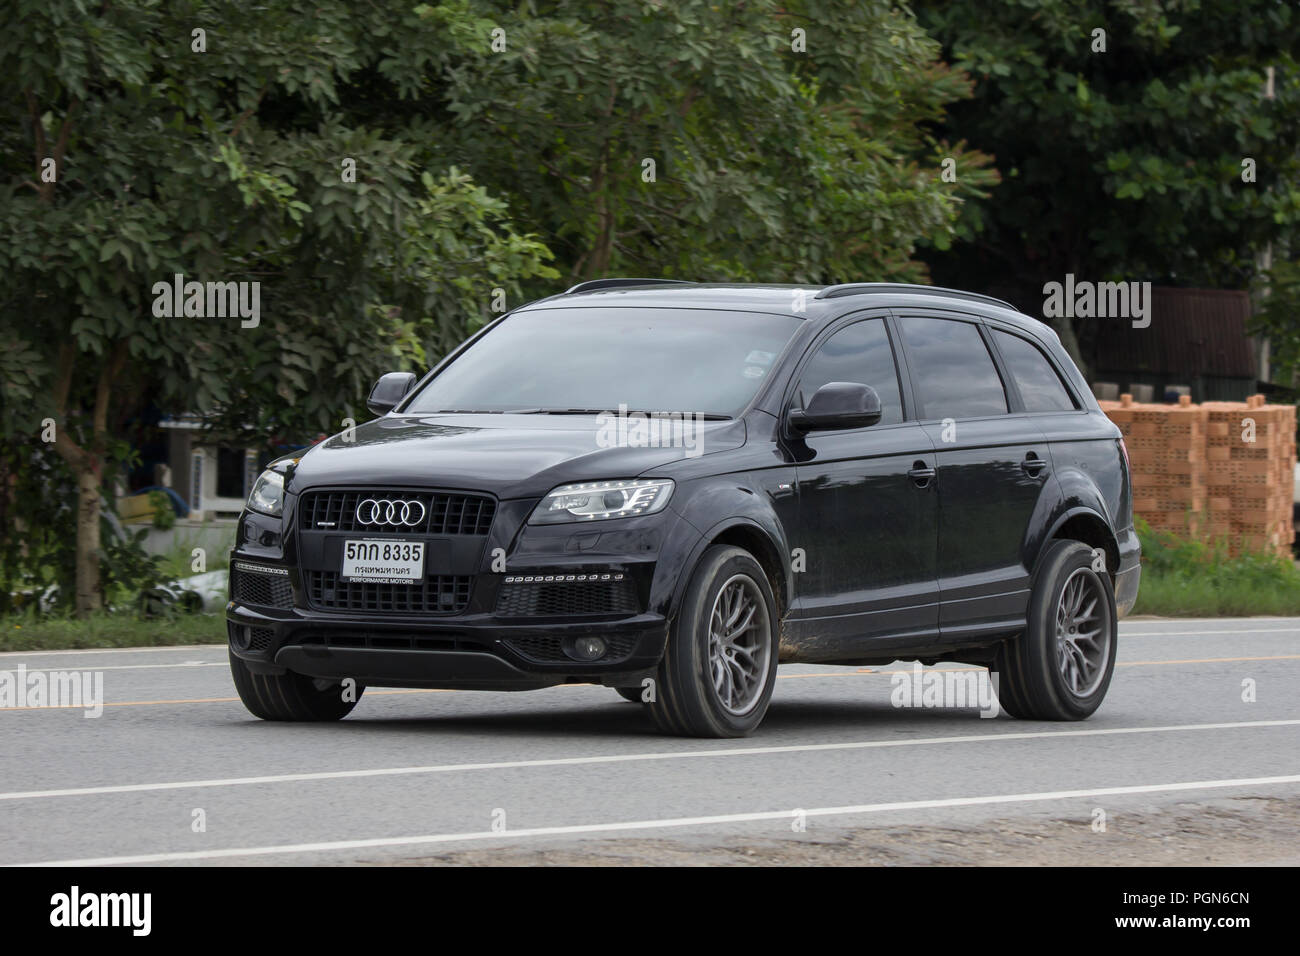 hight resolution of chiangmai thailand july 31 2018 private suv car from audi q6 photo at road no 121 about 8 km from downtown chiangmai thailand